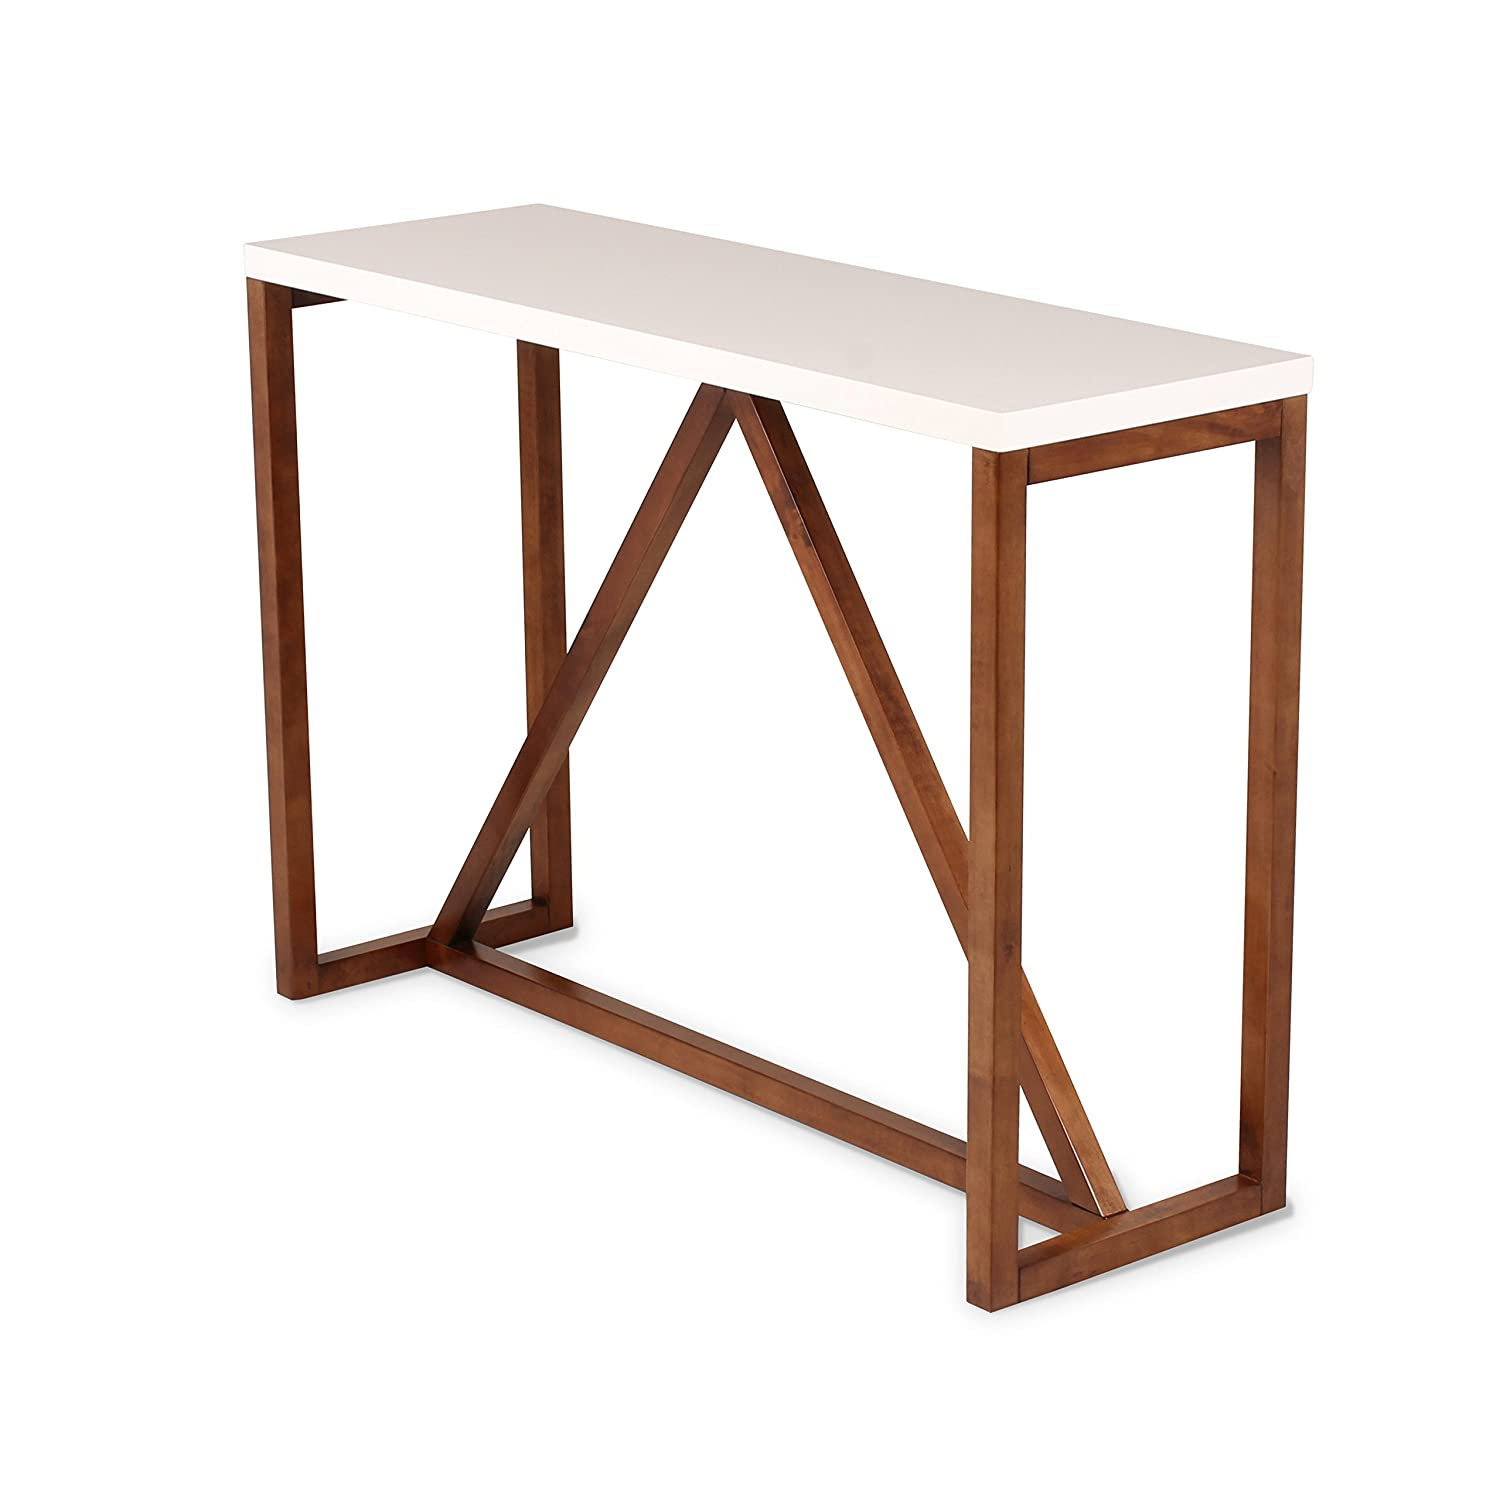 Kate and Laurel Kaya Two Console Table, 42 x 14 x 30 , White Walnut Brown